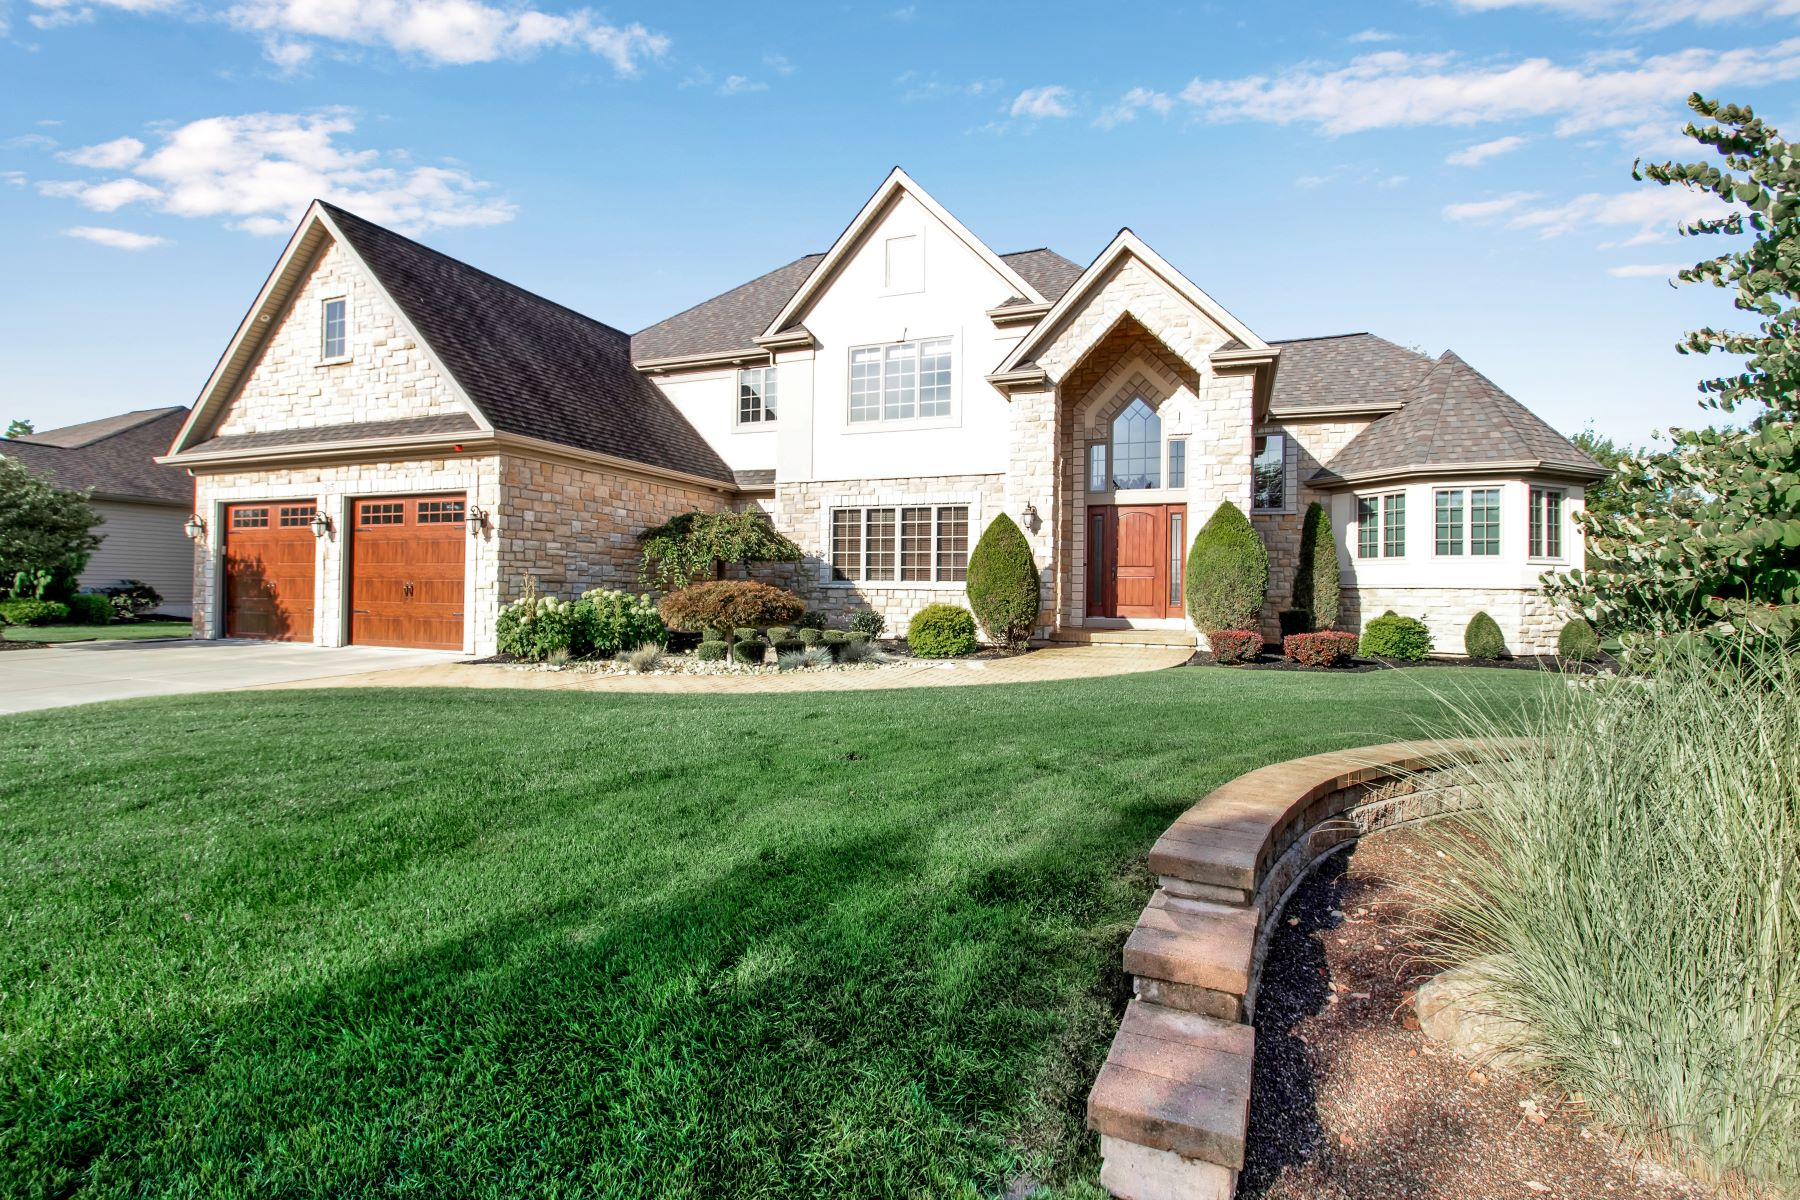 Single Family Homes for Sale at Park Place Estate 315 Park Place Grand Island, New York 14072 United States